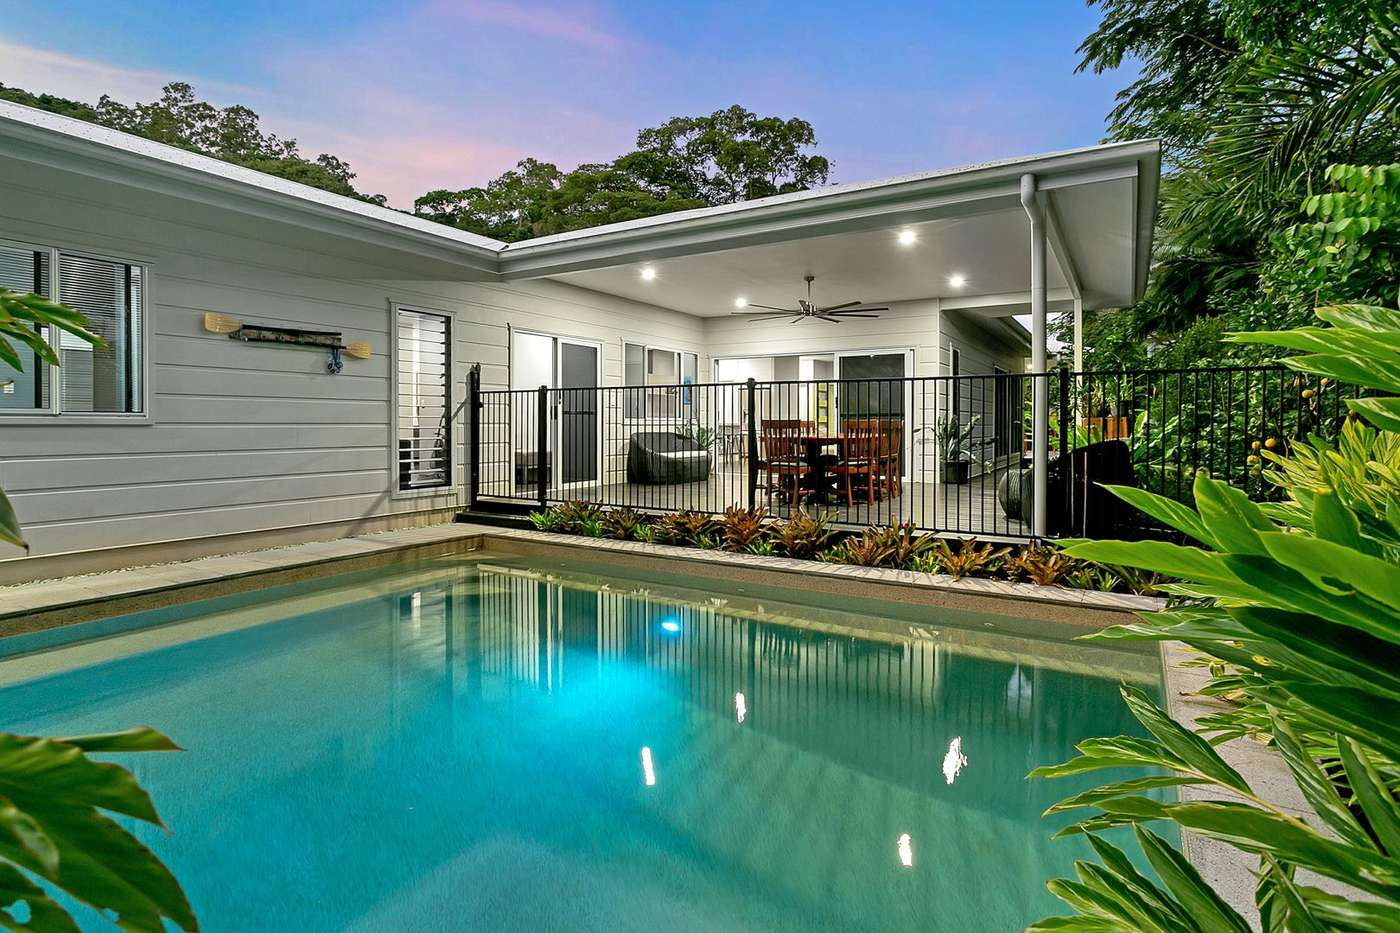 Main view of Homely house listing, 431 Mayers Street, Edge Hill, QLD 4870